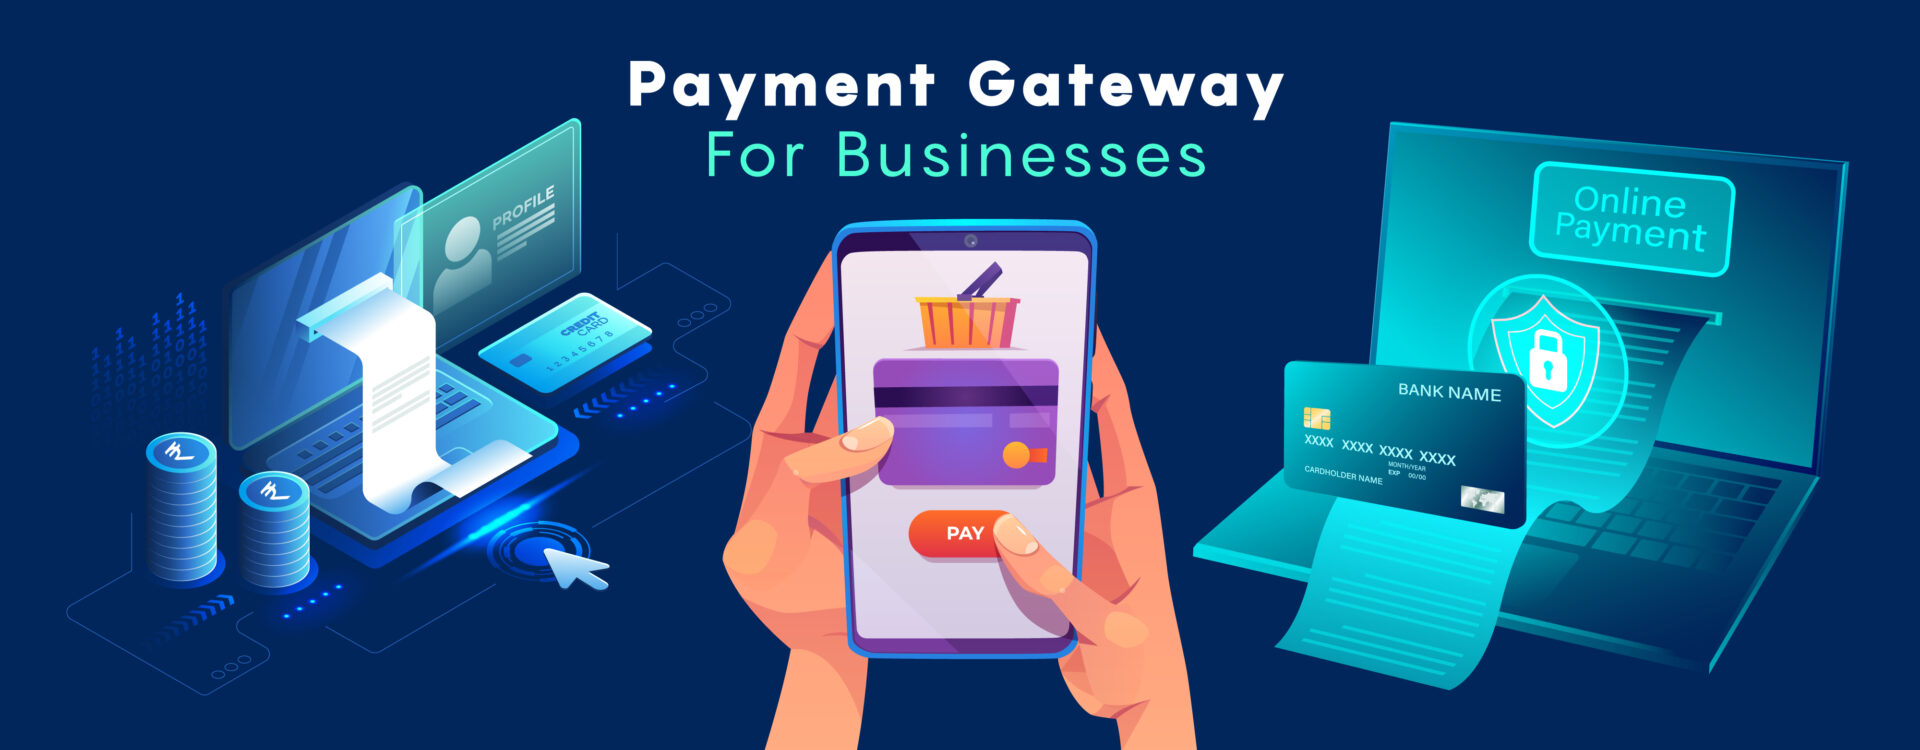 Payment Gateway and Small Businesses - Learn What Is Happening